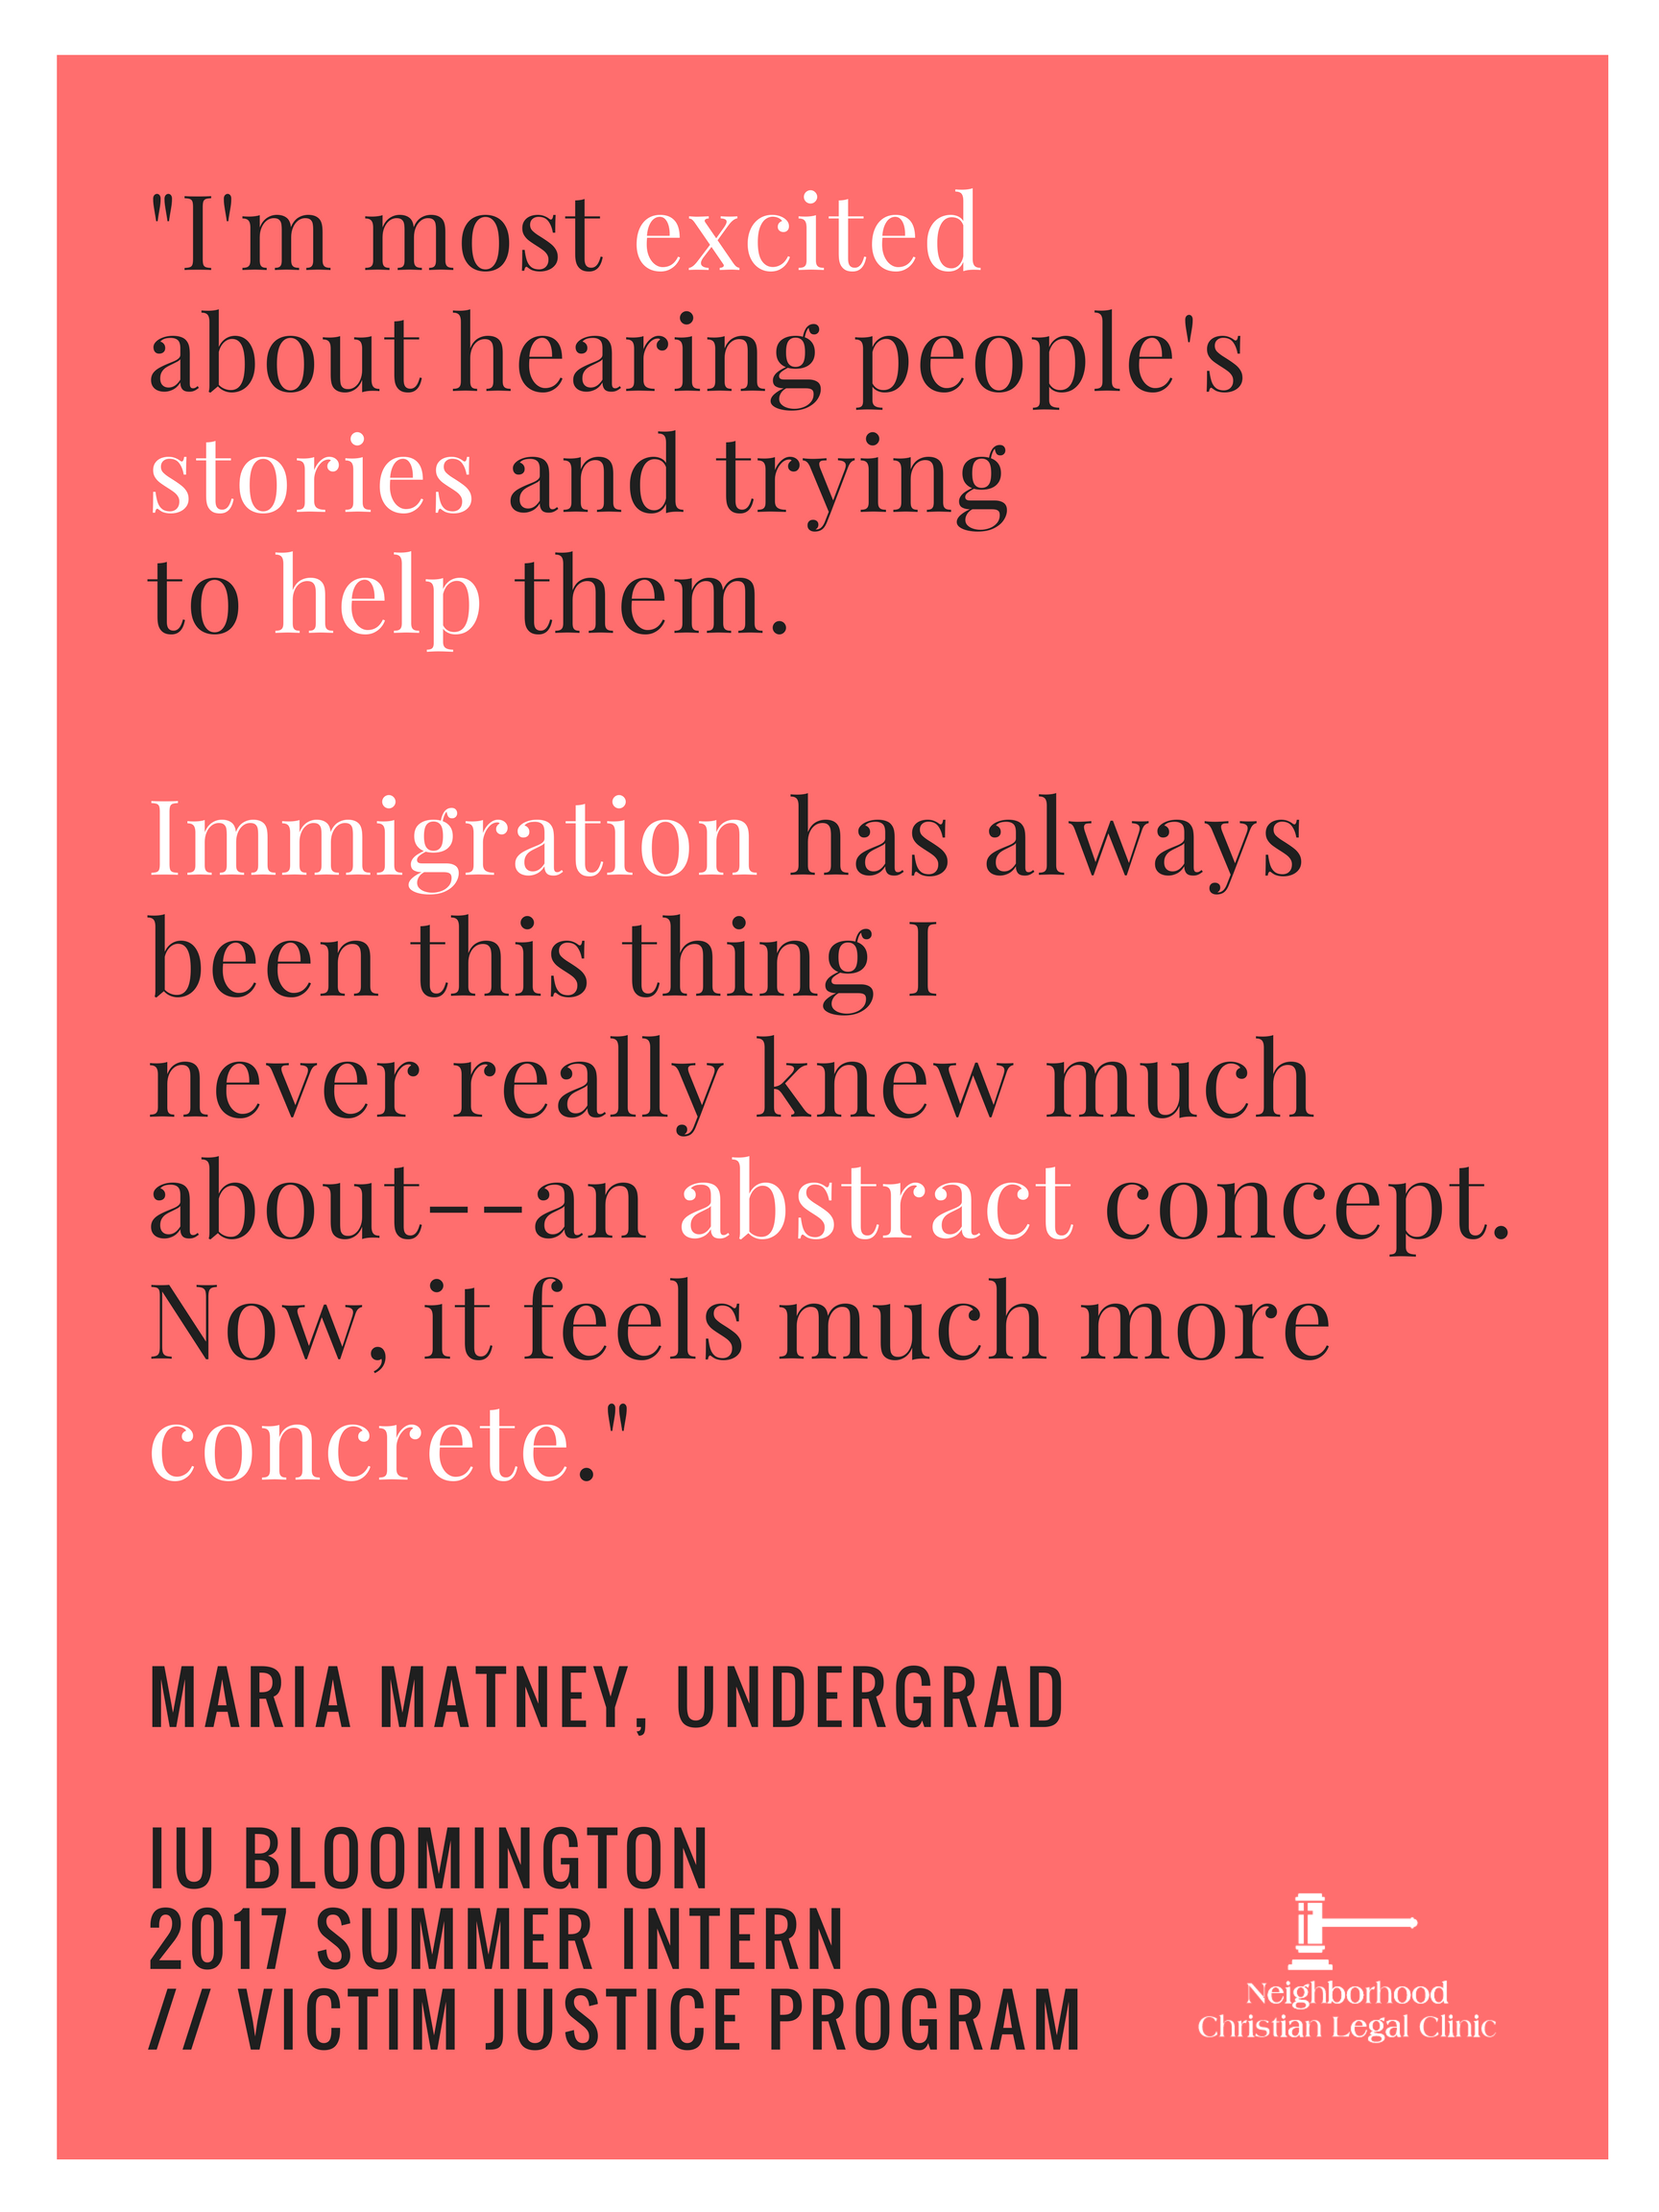 2017 Summer Intern quote Maria Matney - Canva.png